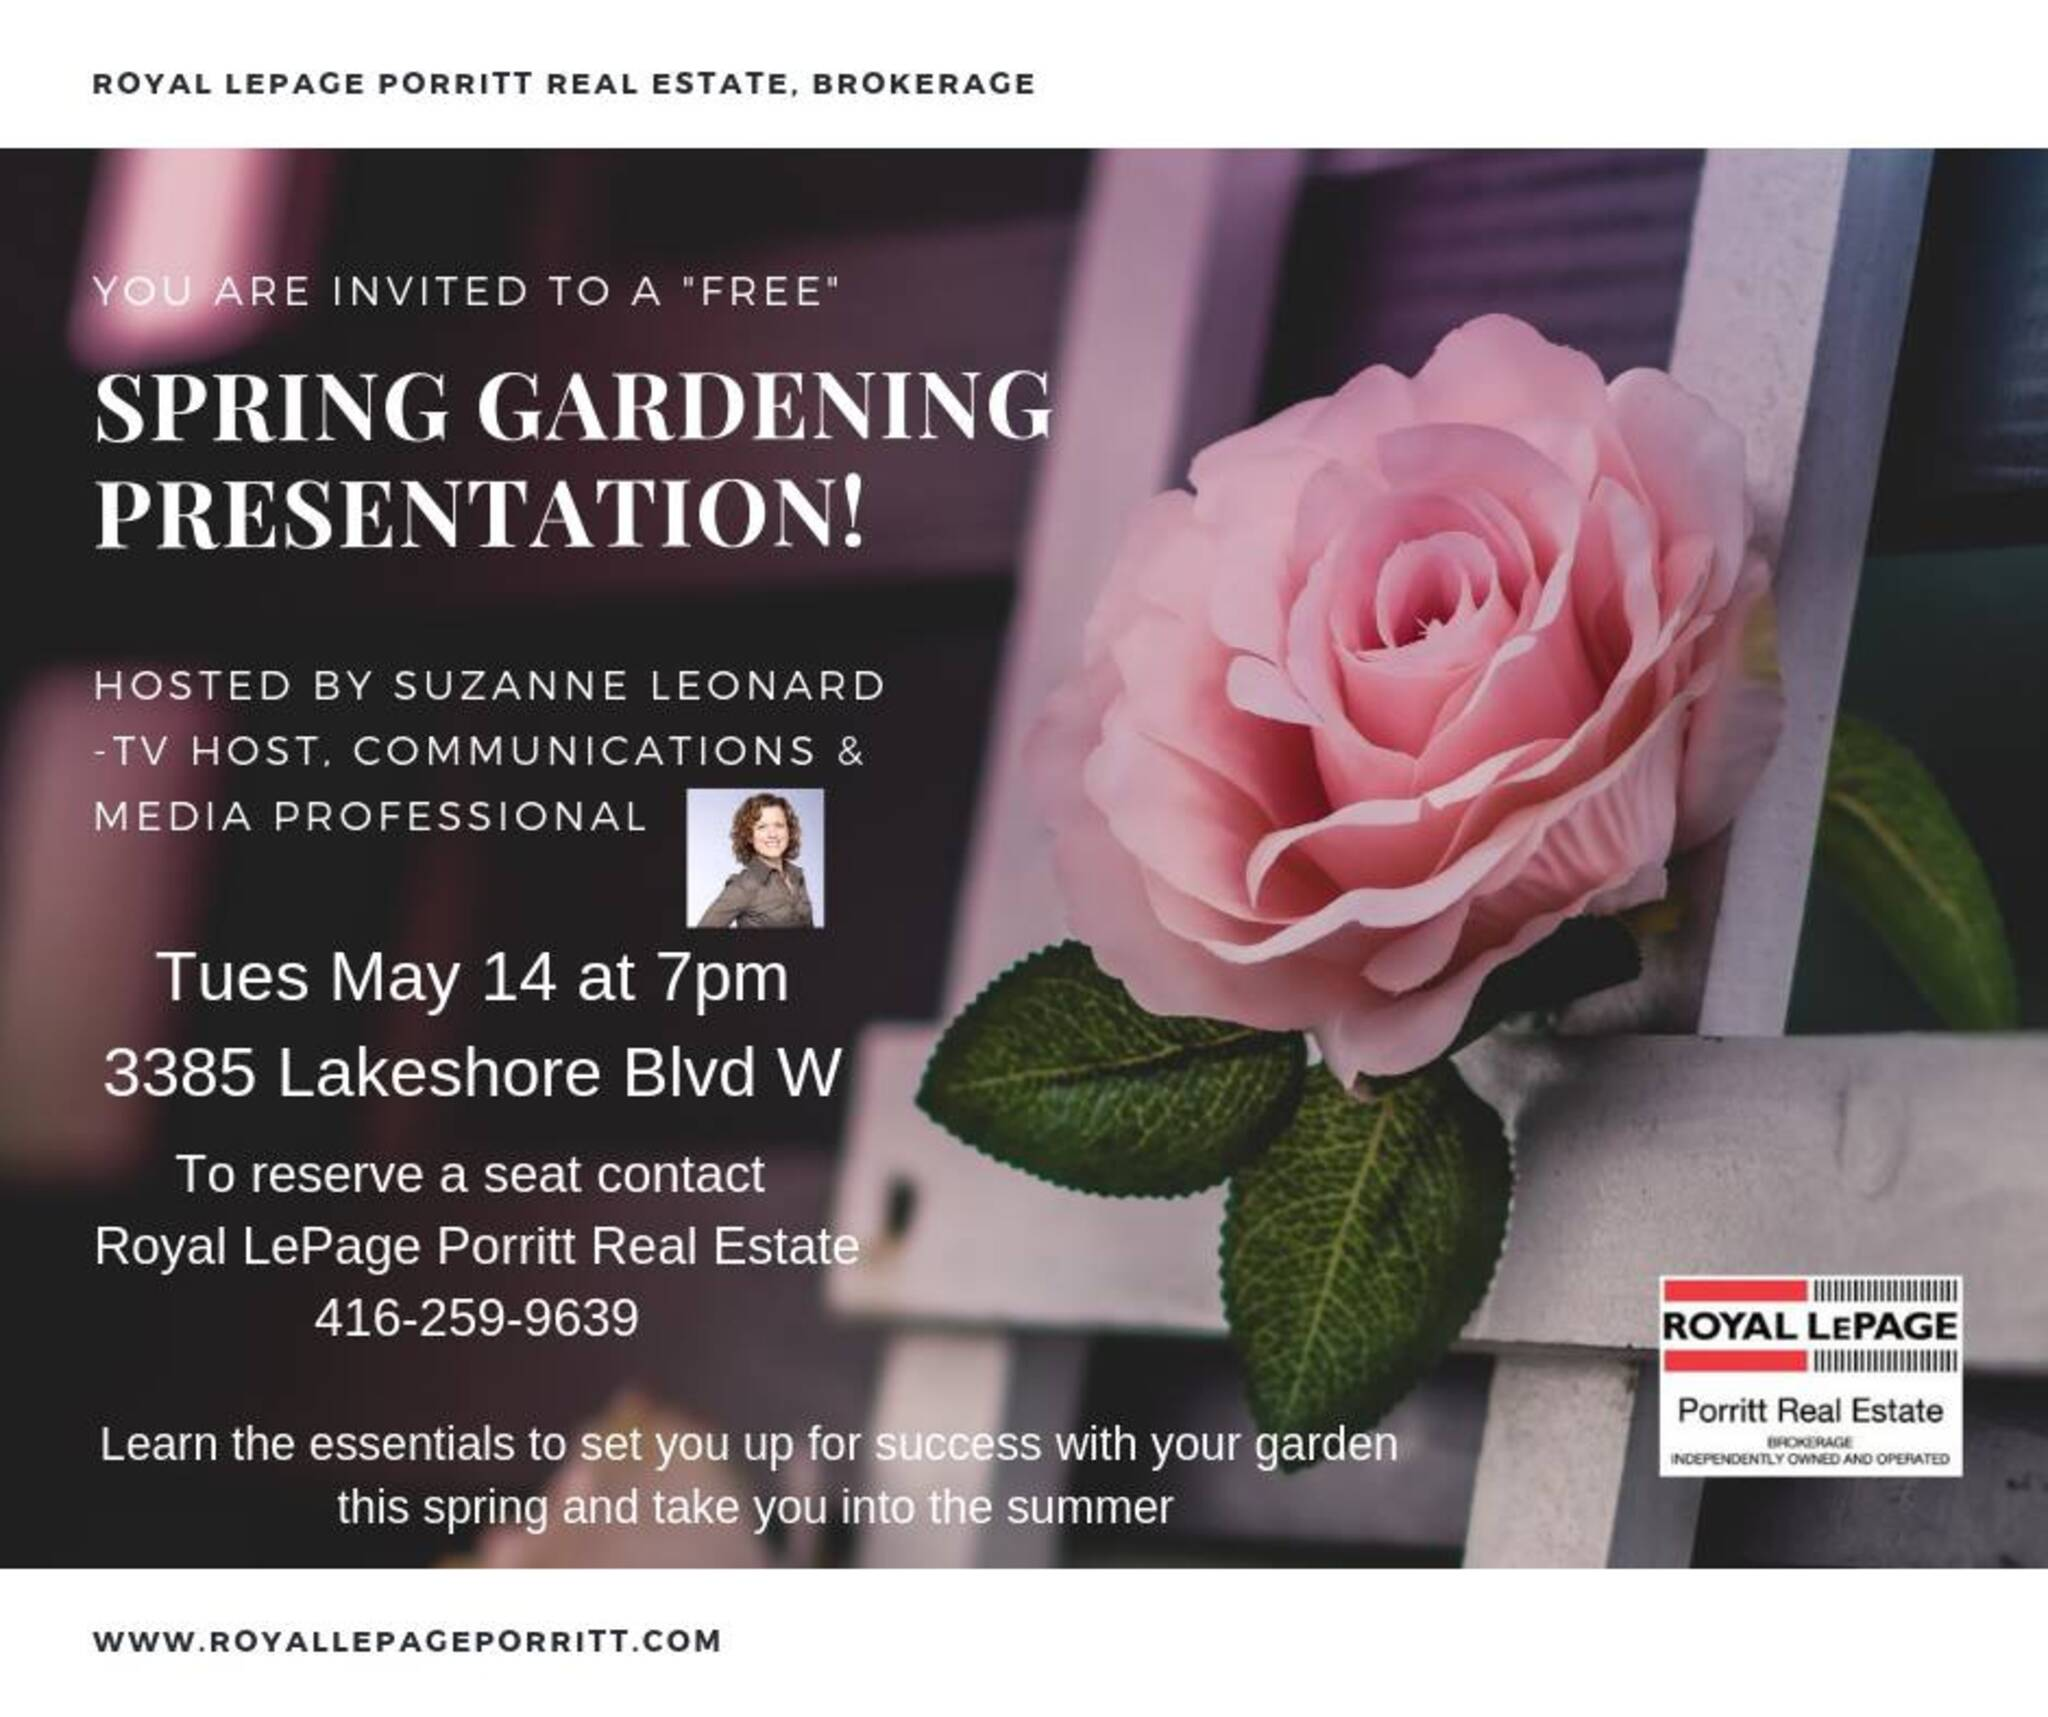 Spring Gardening Presentation hosted by Suzanne Leonard